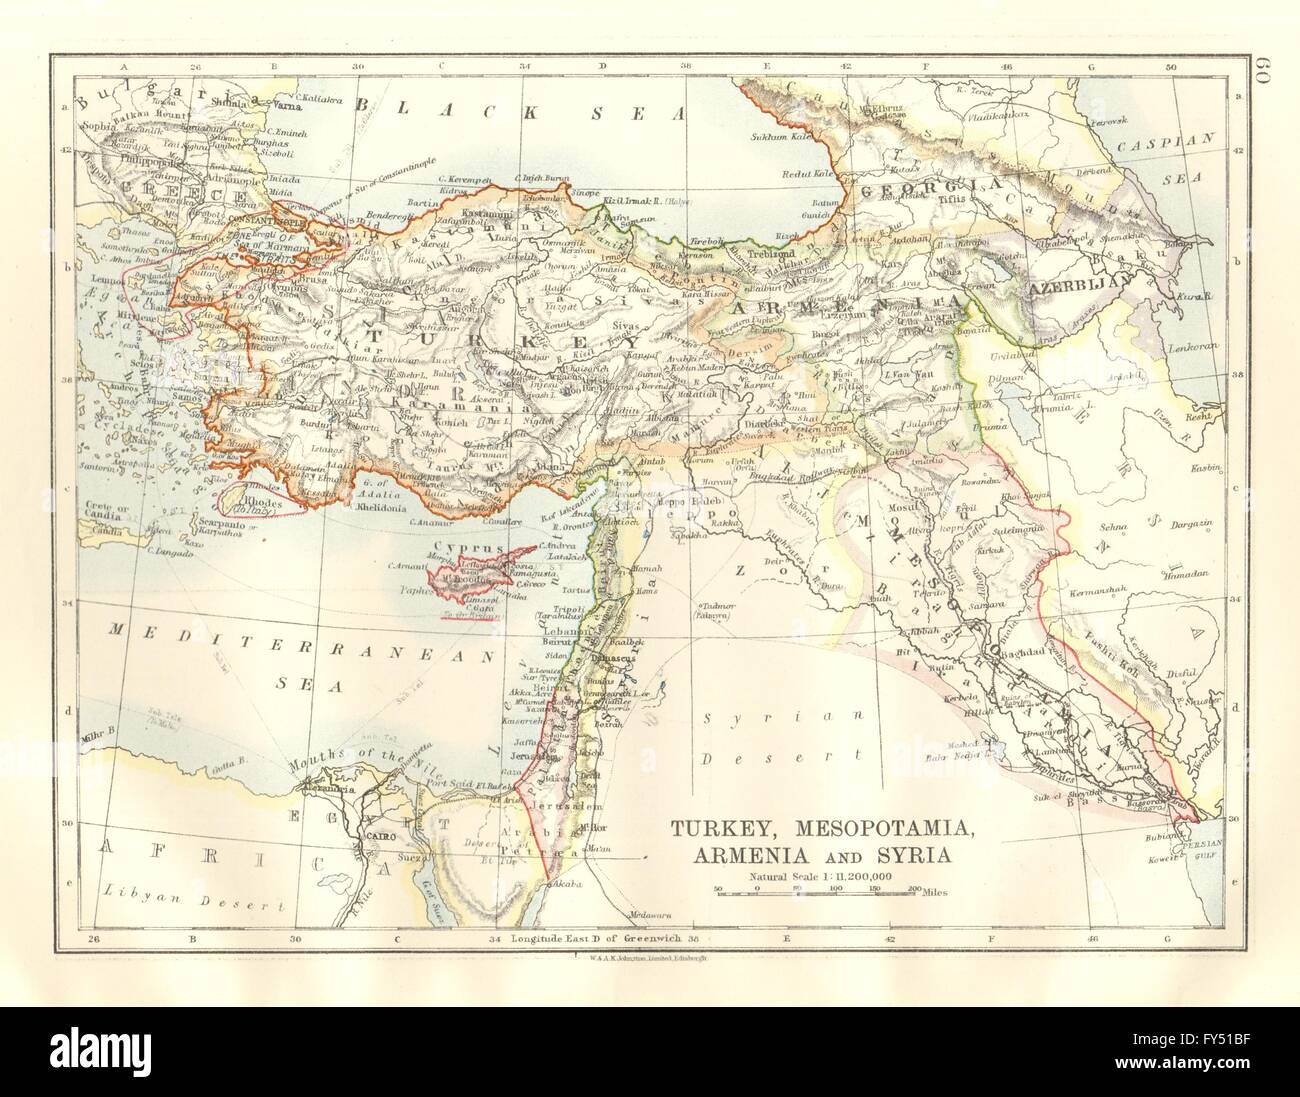 MIDDLE EAST Treaty of Sevres Armenia Zone of Straits Stock